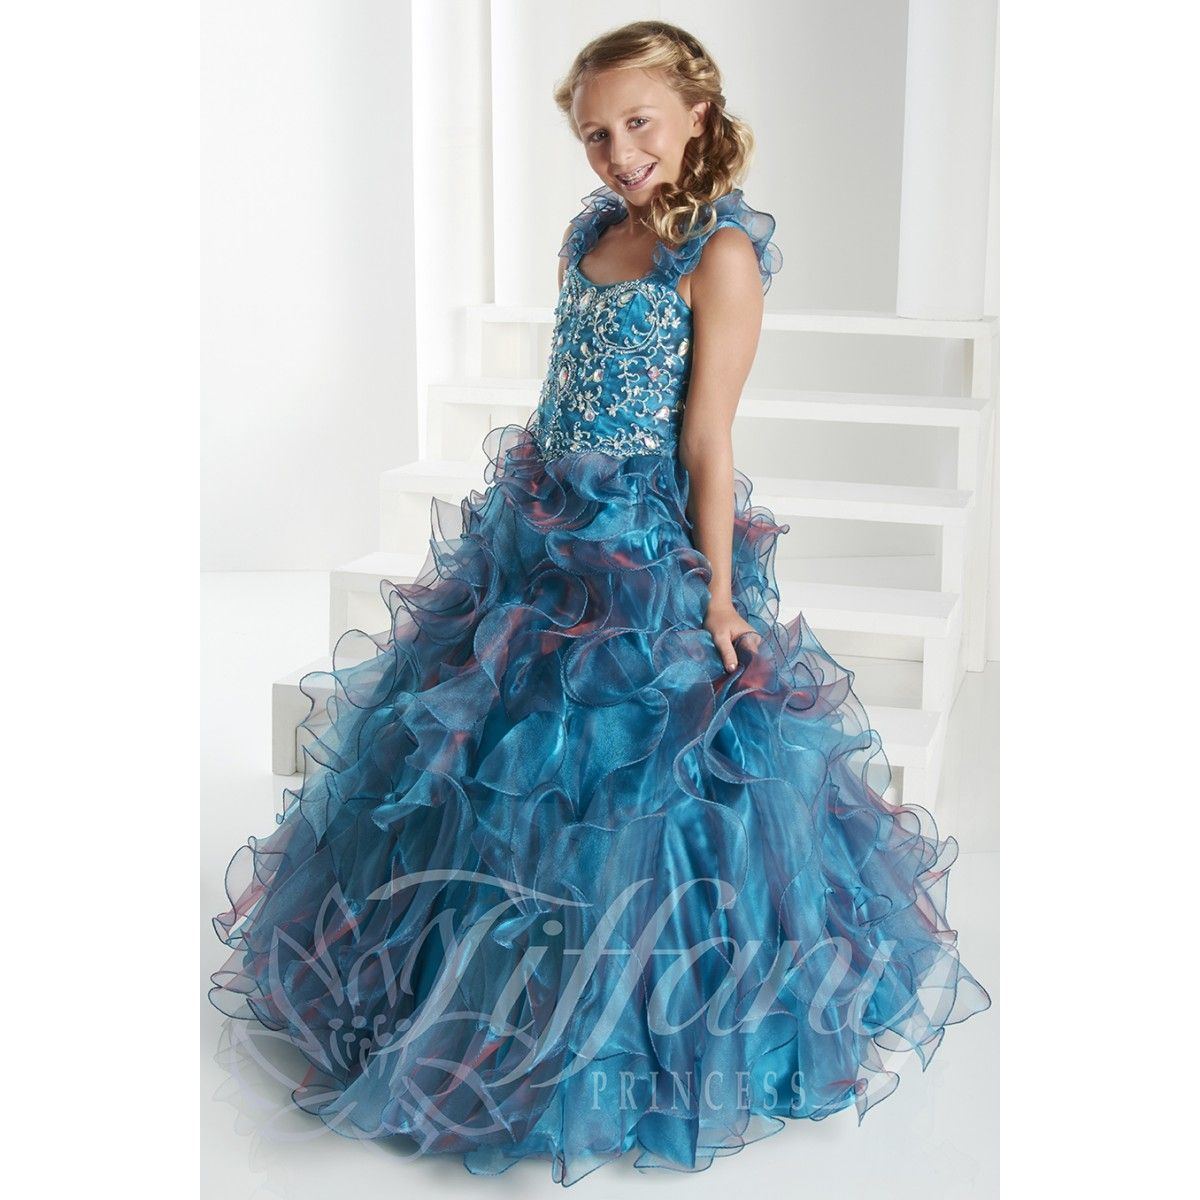 Style tiffany princess specialprom dresses pinterest